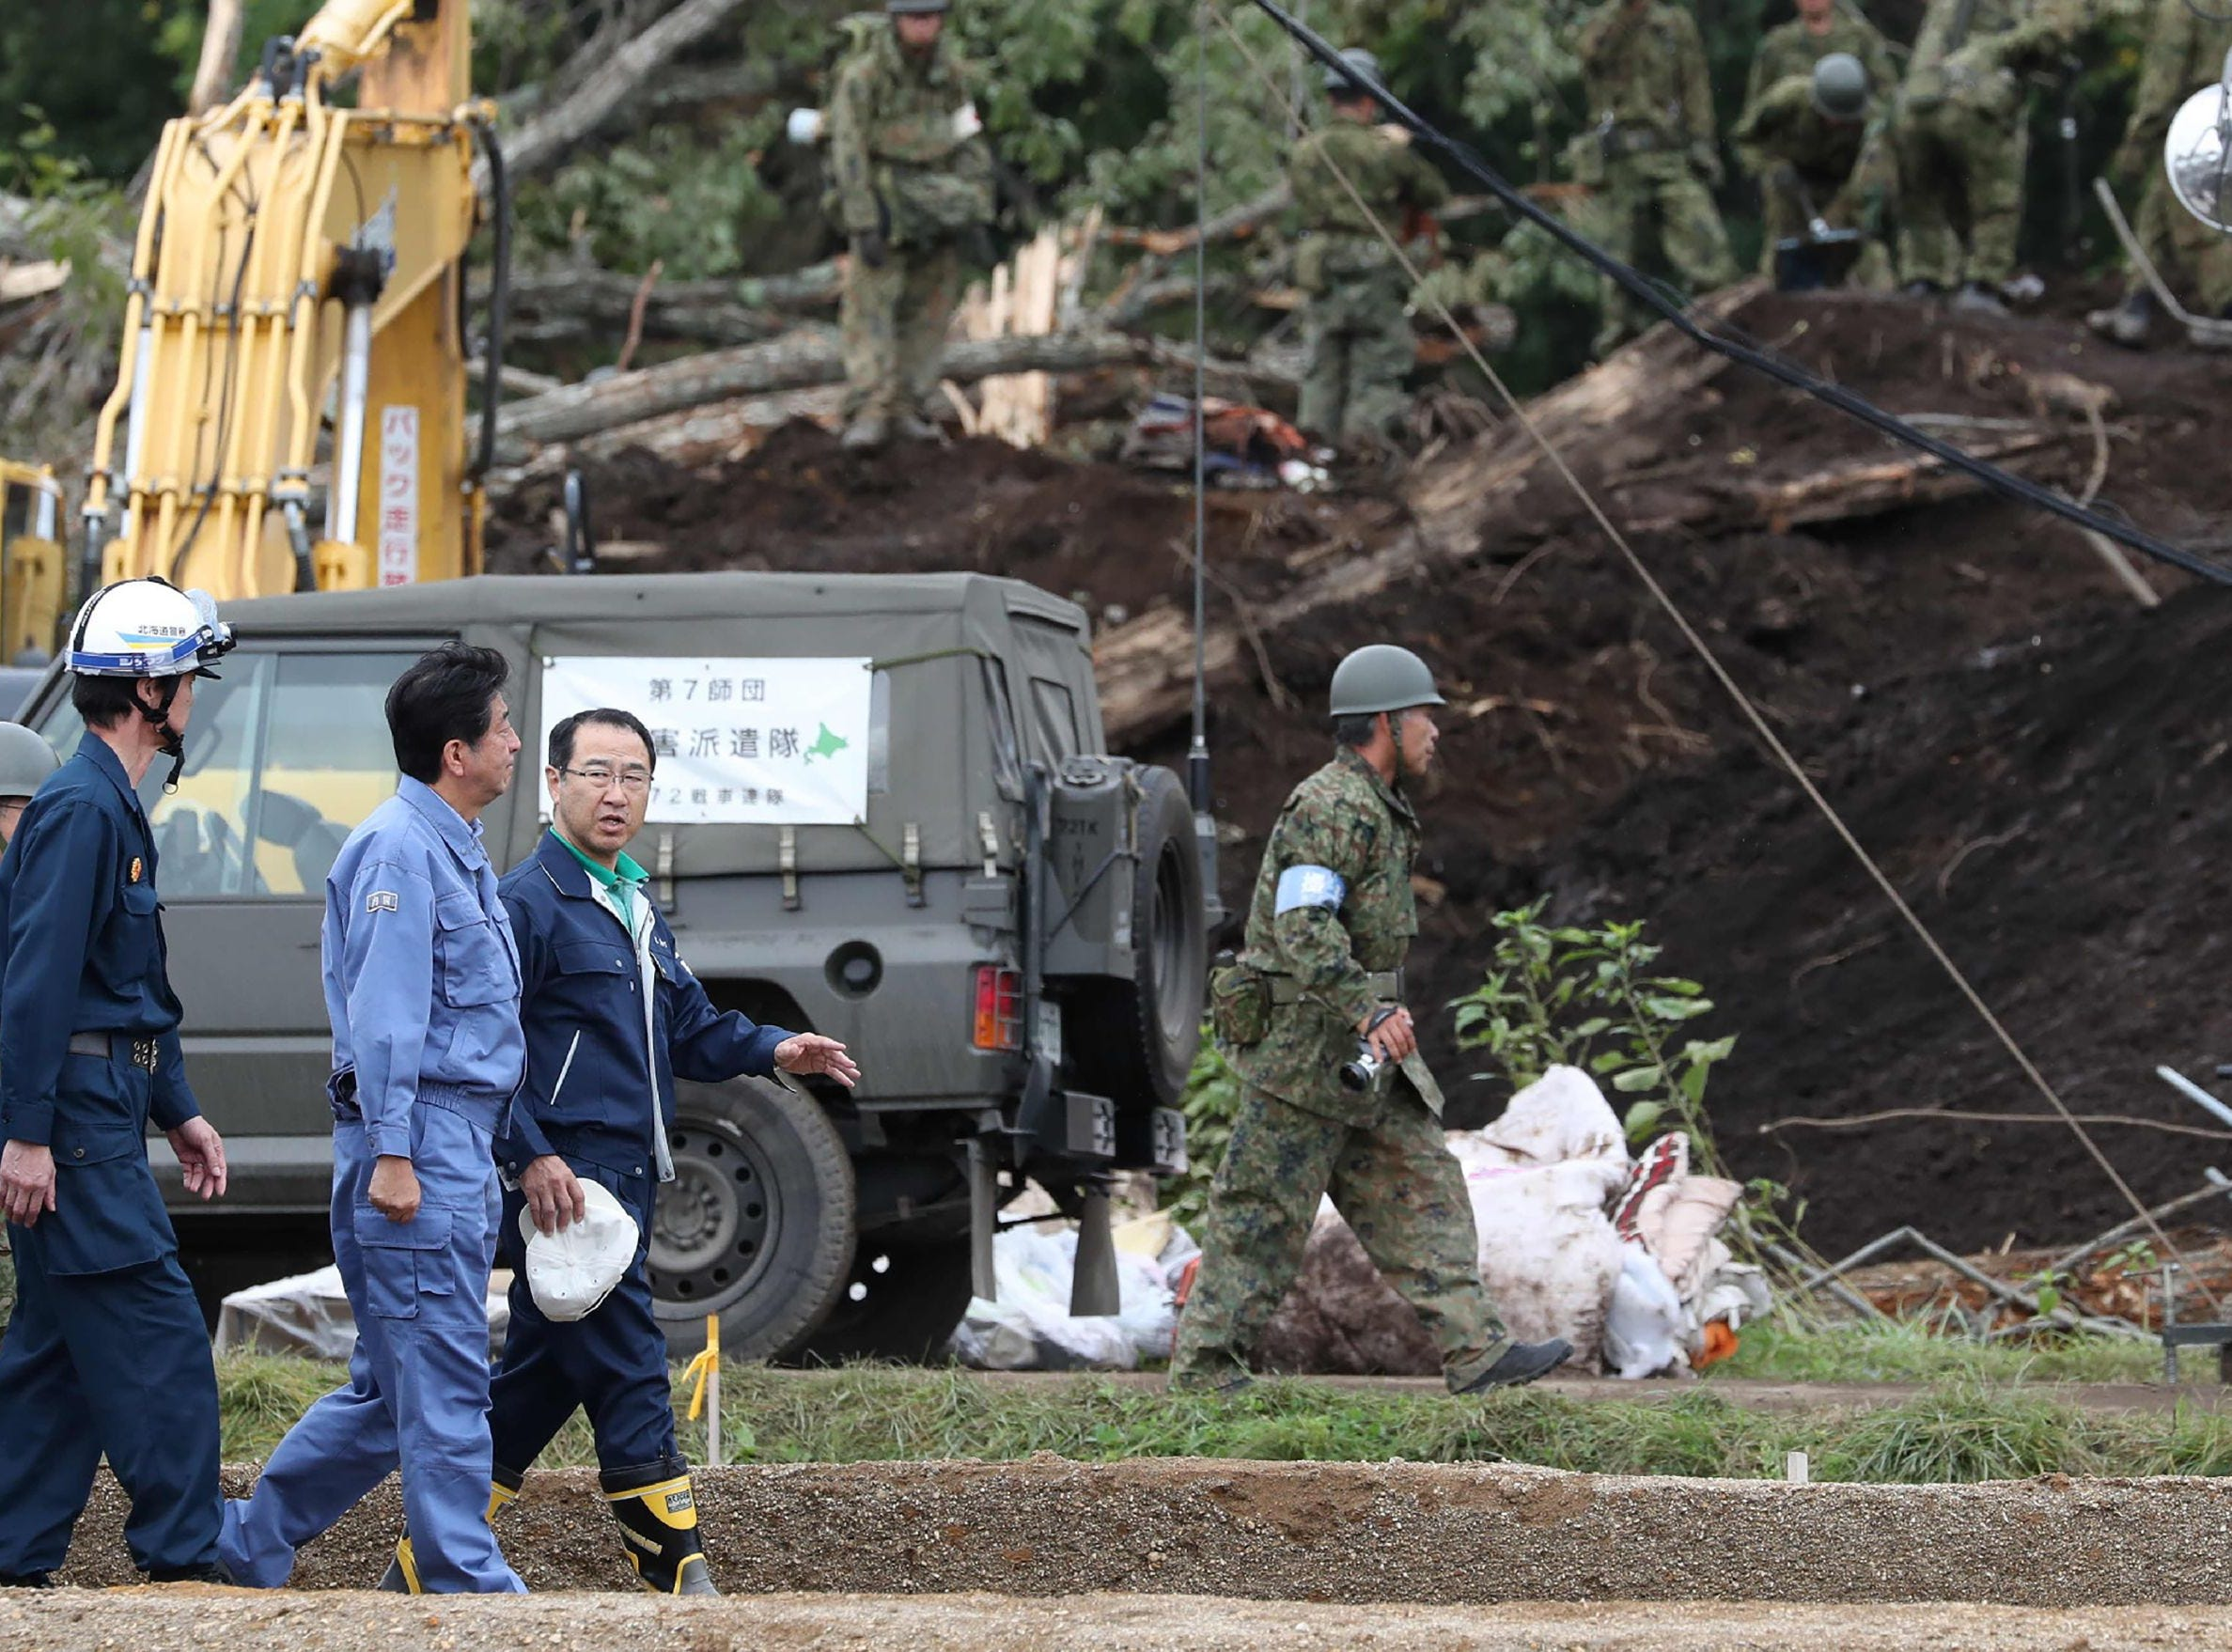 Japanese Prime Minister Shinzo Abe, second from left, visits the devastated city of Astuma on Sept. 9, 2018 after a 6.6-magnitude earthquake hit the northern Japanese island of Hokkaido on September 6. Abe visited the quake-hit northern region of Hokkaido as officials confirmed two more deaths bringing the toll to 37.